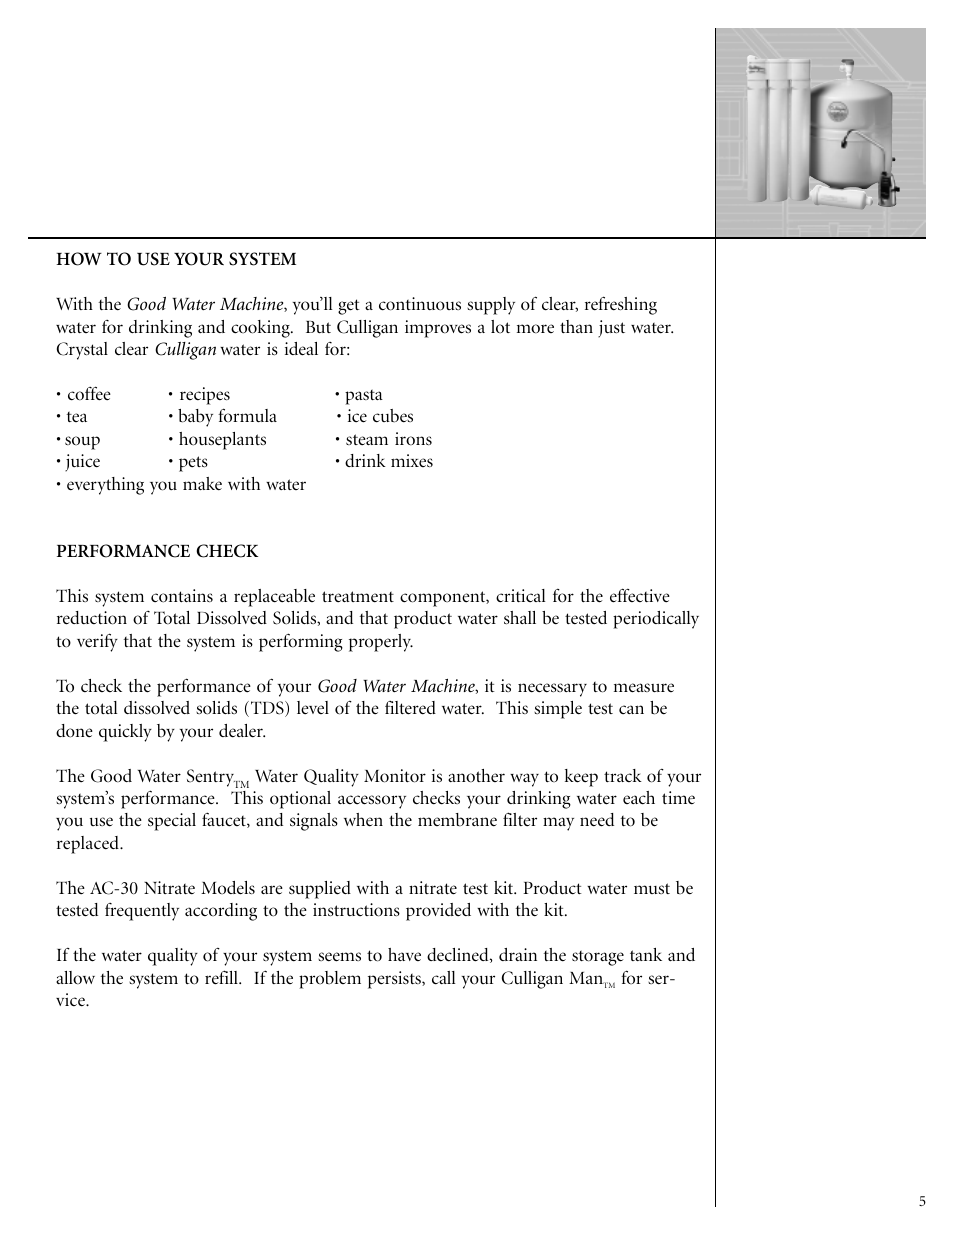 Culligan GoodWater Machine DrinkingWater System User Manual | Page 7 / 21